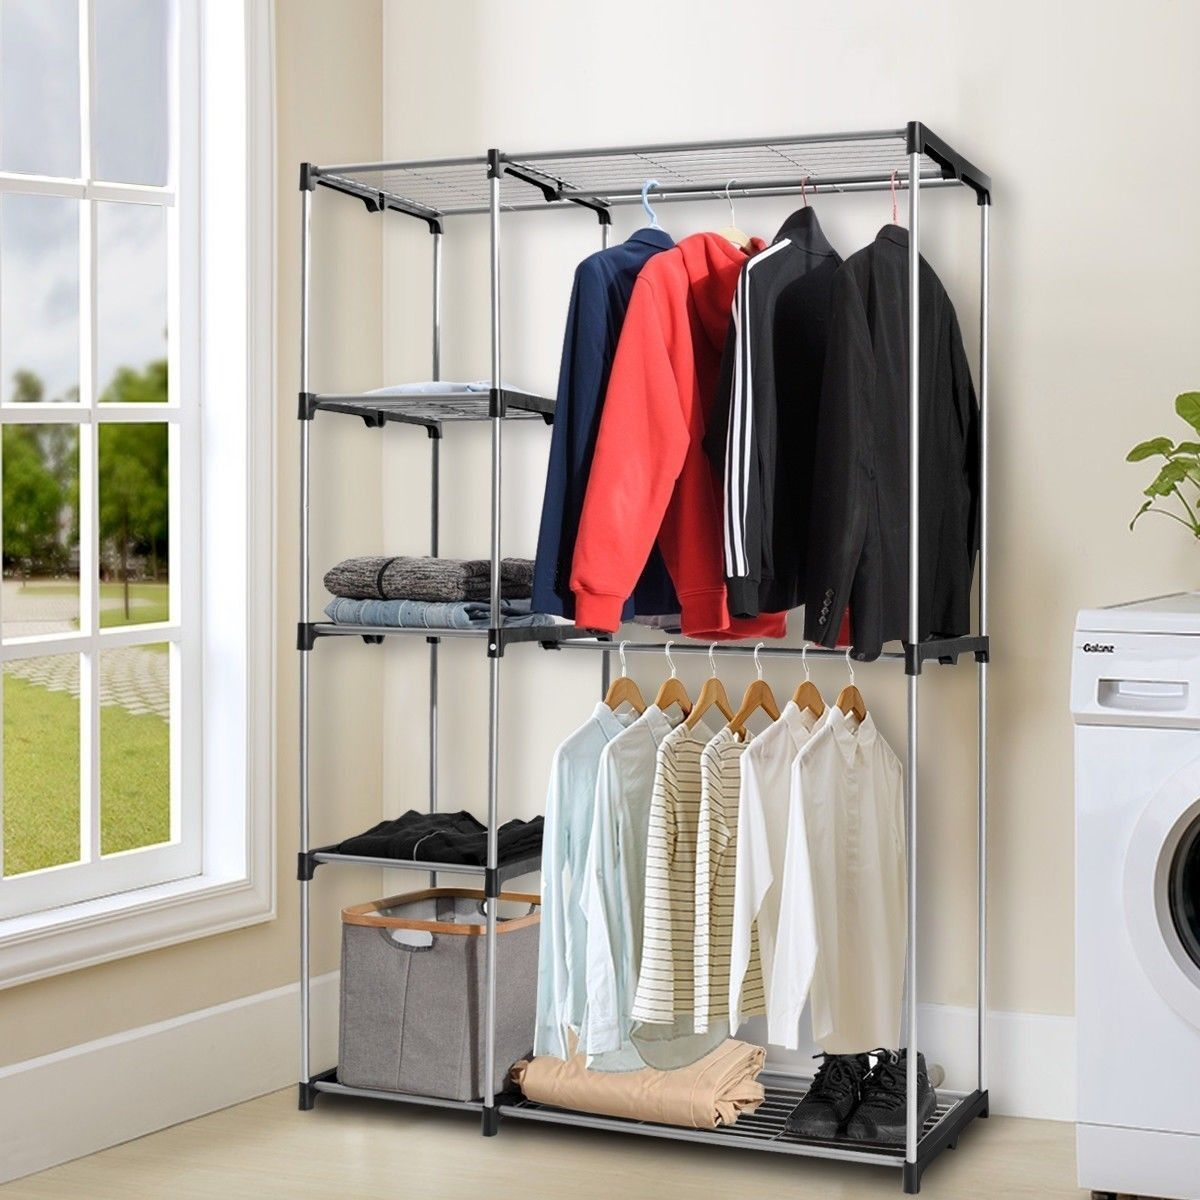 Pin By Iryna Kosse On Closet Clothes Storage Organizer Portable Closet Garment Racks